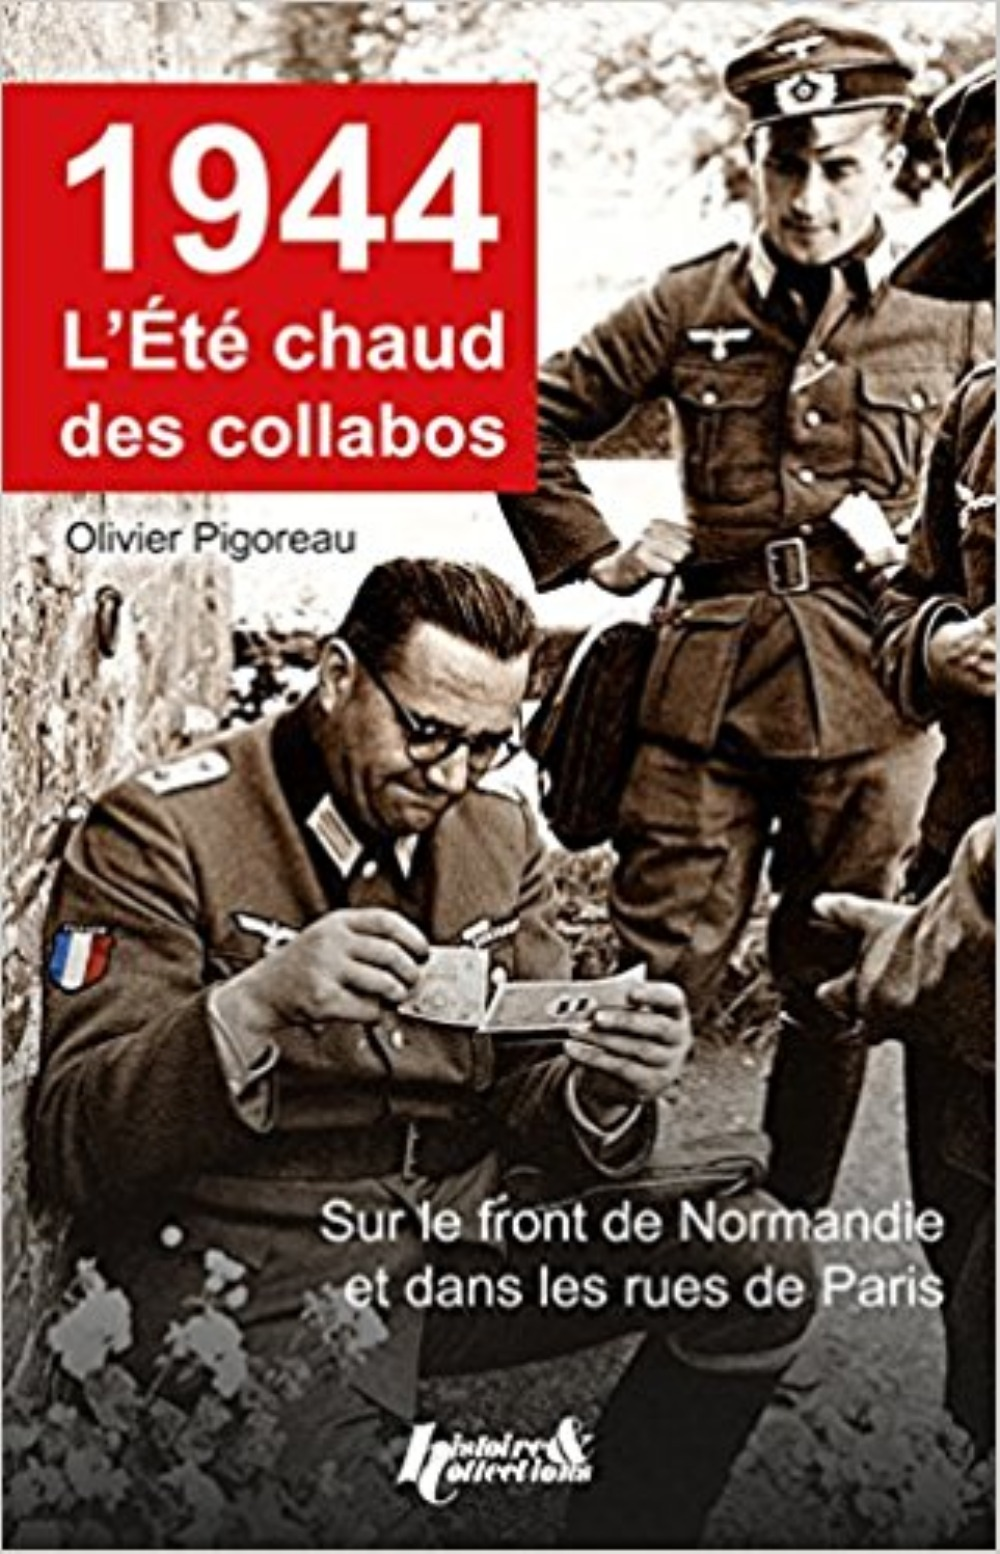 1944, L'ETE CHAUD DES COLLABOS